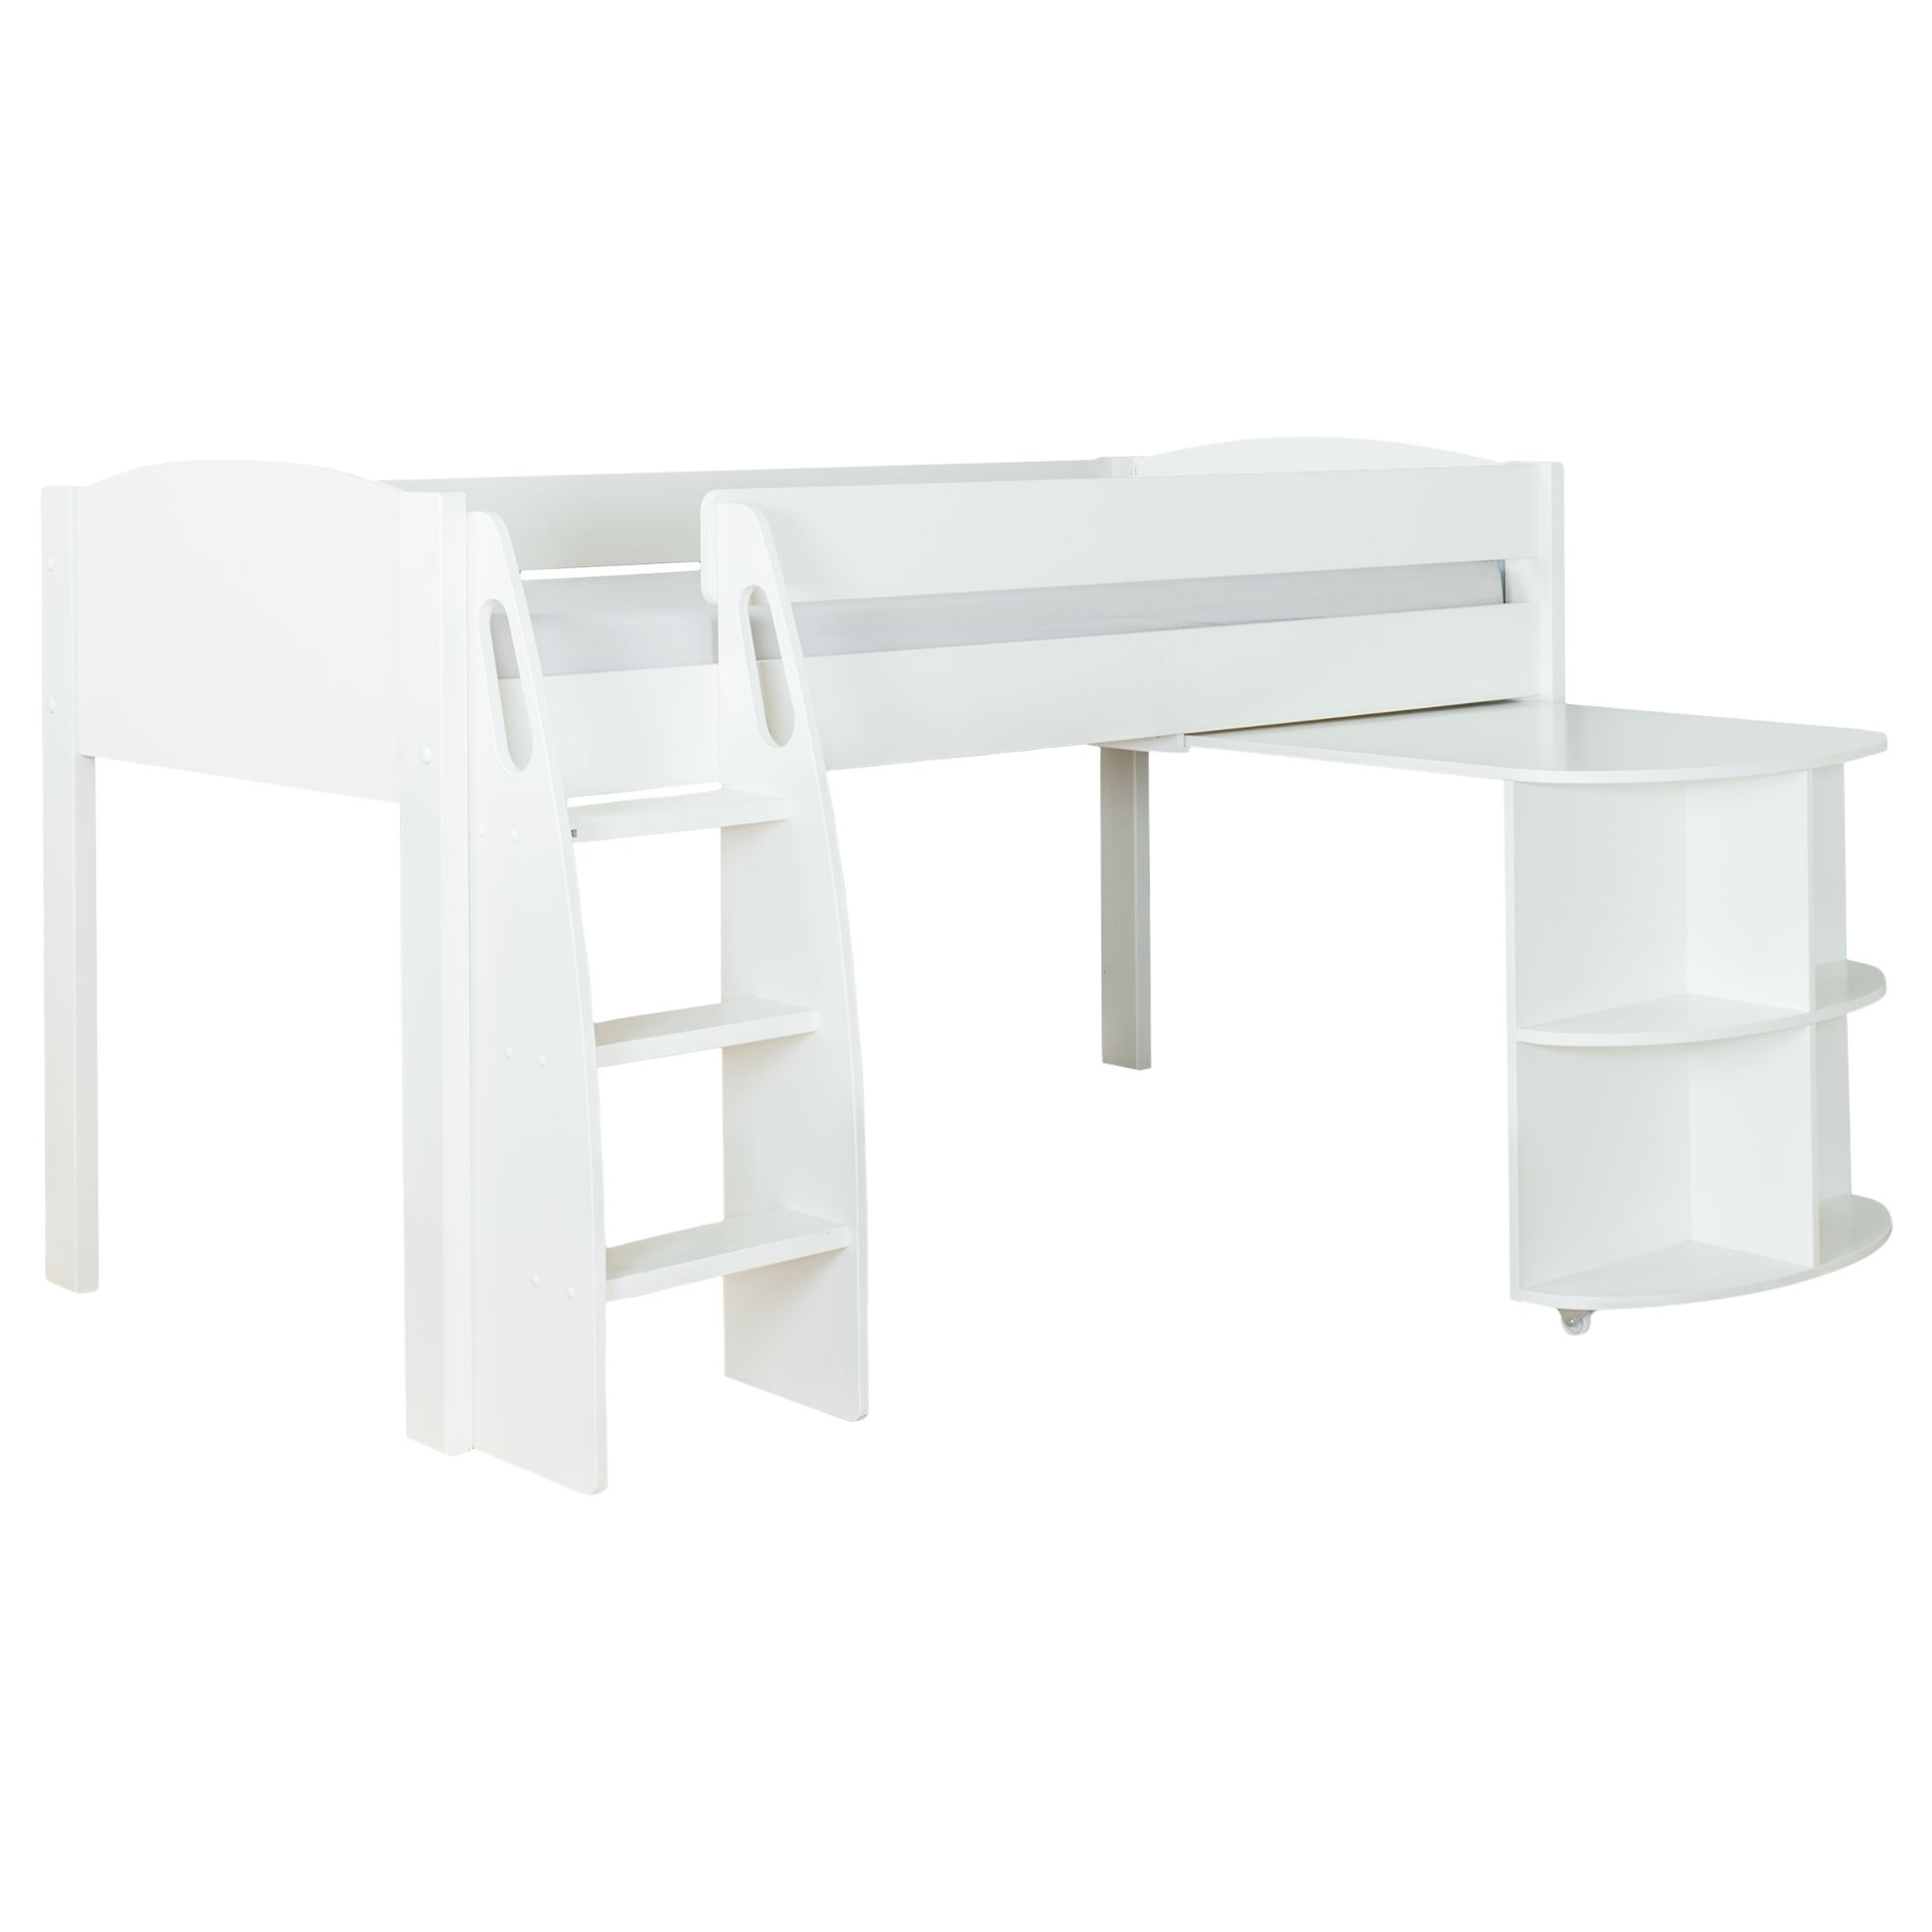 Stompa Stompa Uno S Plus Mid-Sleeper Bed Frame with Pull-Out Desk